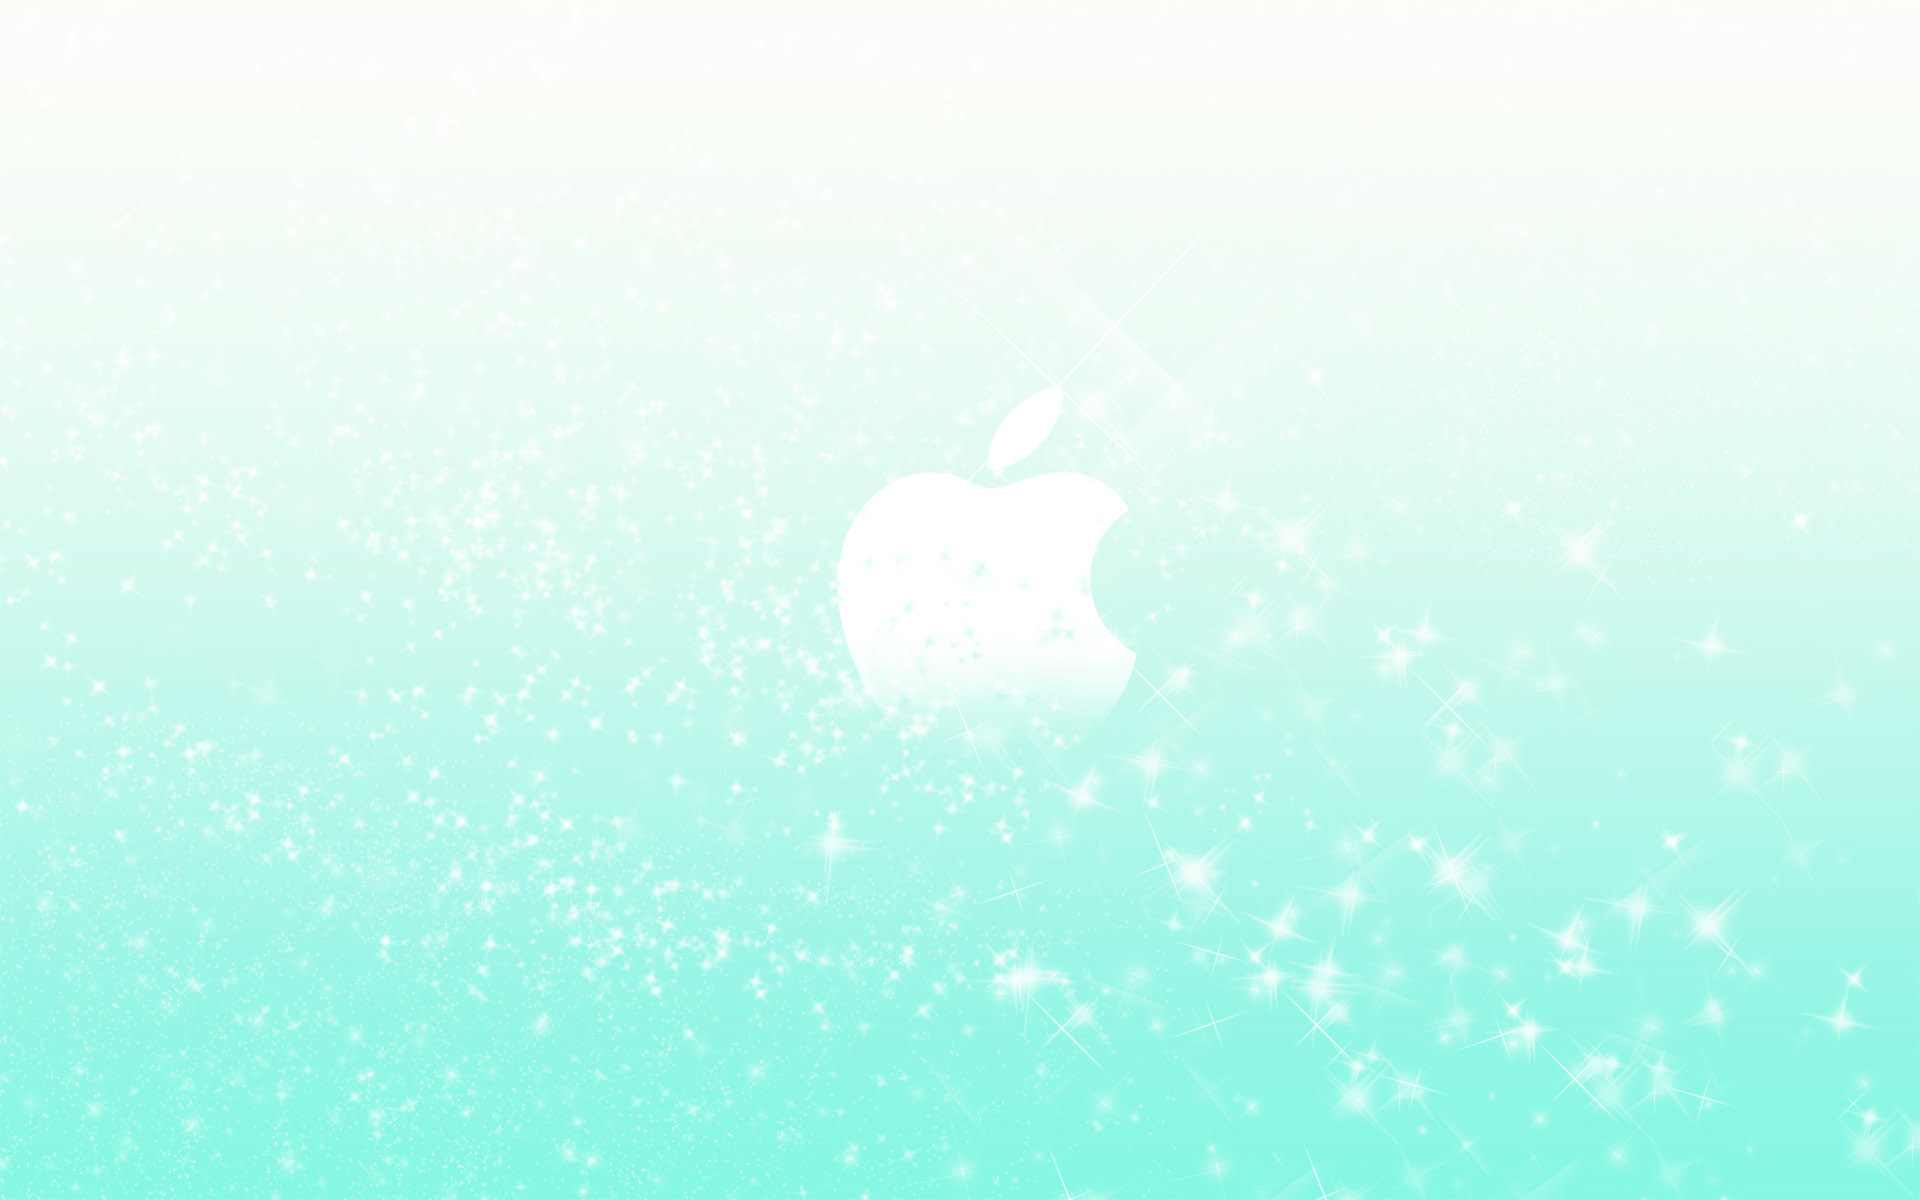 Mac Desktop Wallpapers HD White Riot Wallpapers For Apple 1920x1200